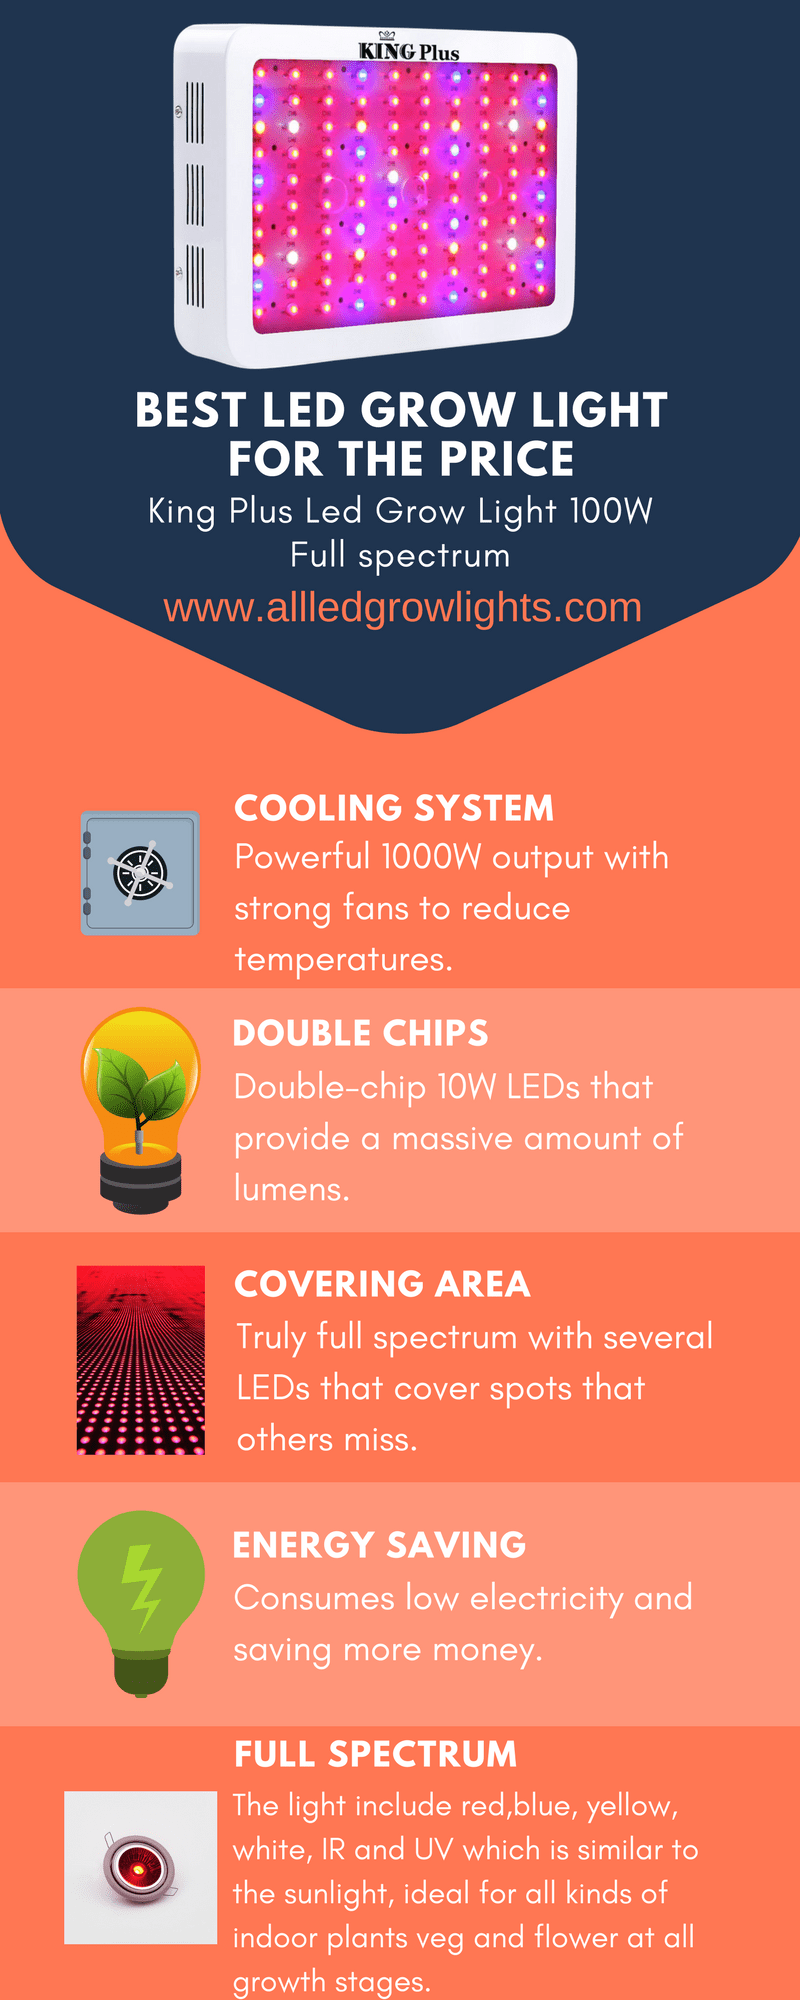 best led grow light by price infograph